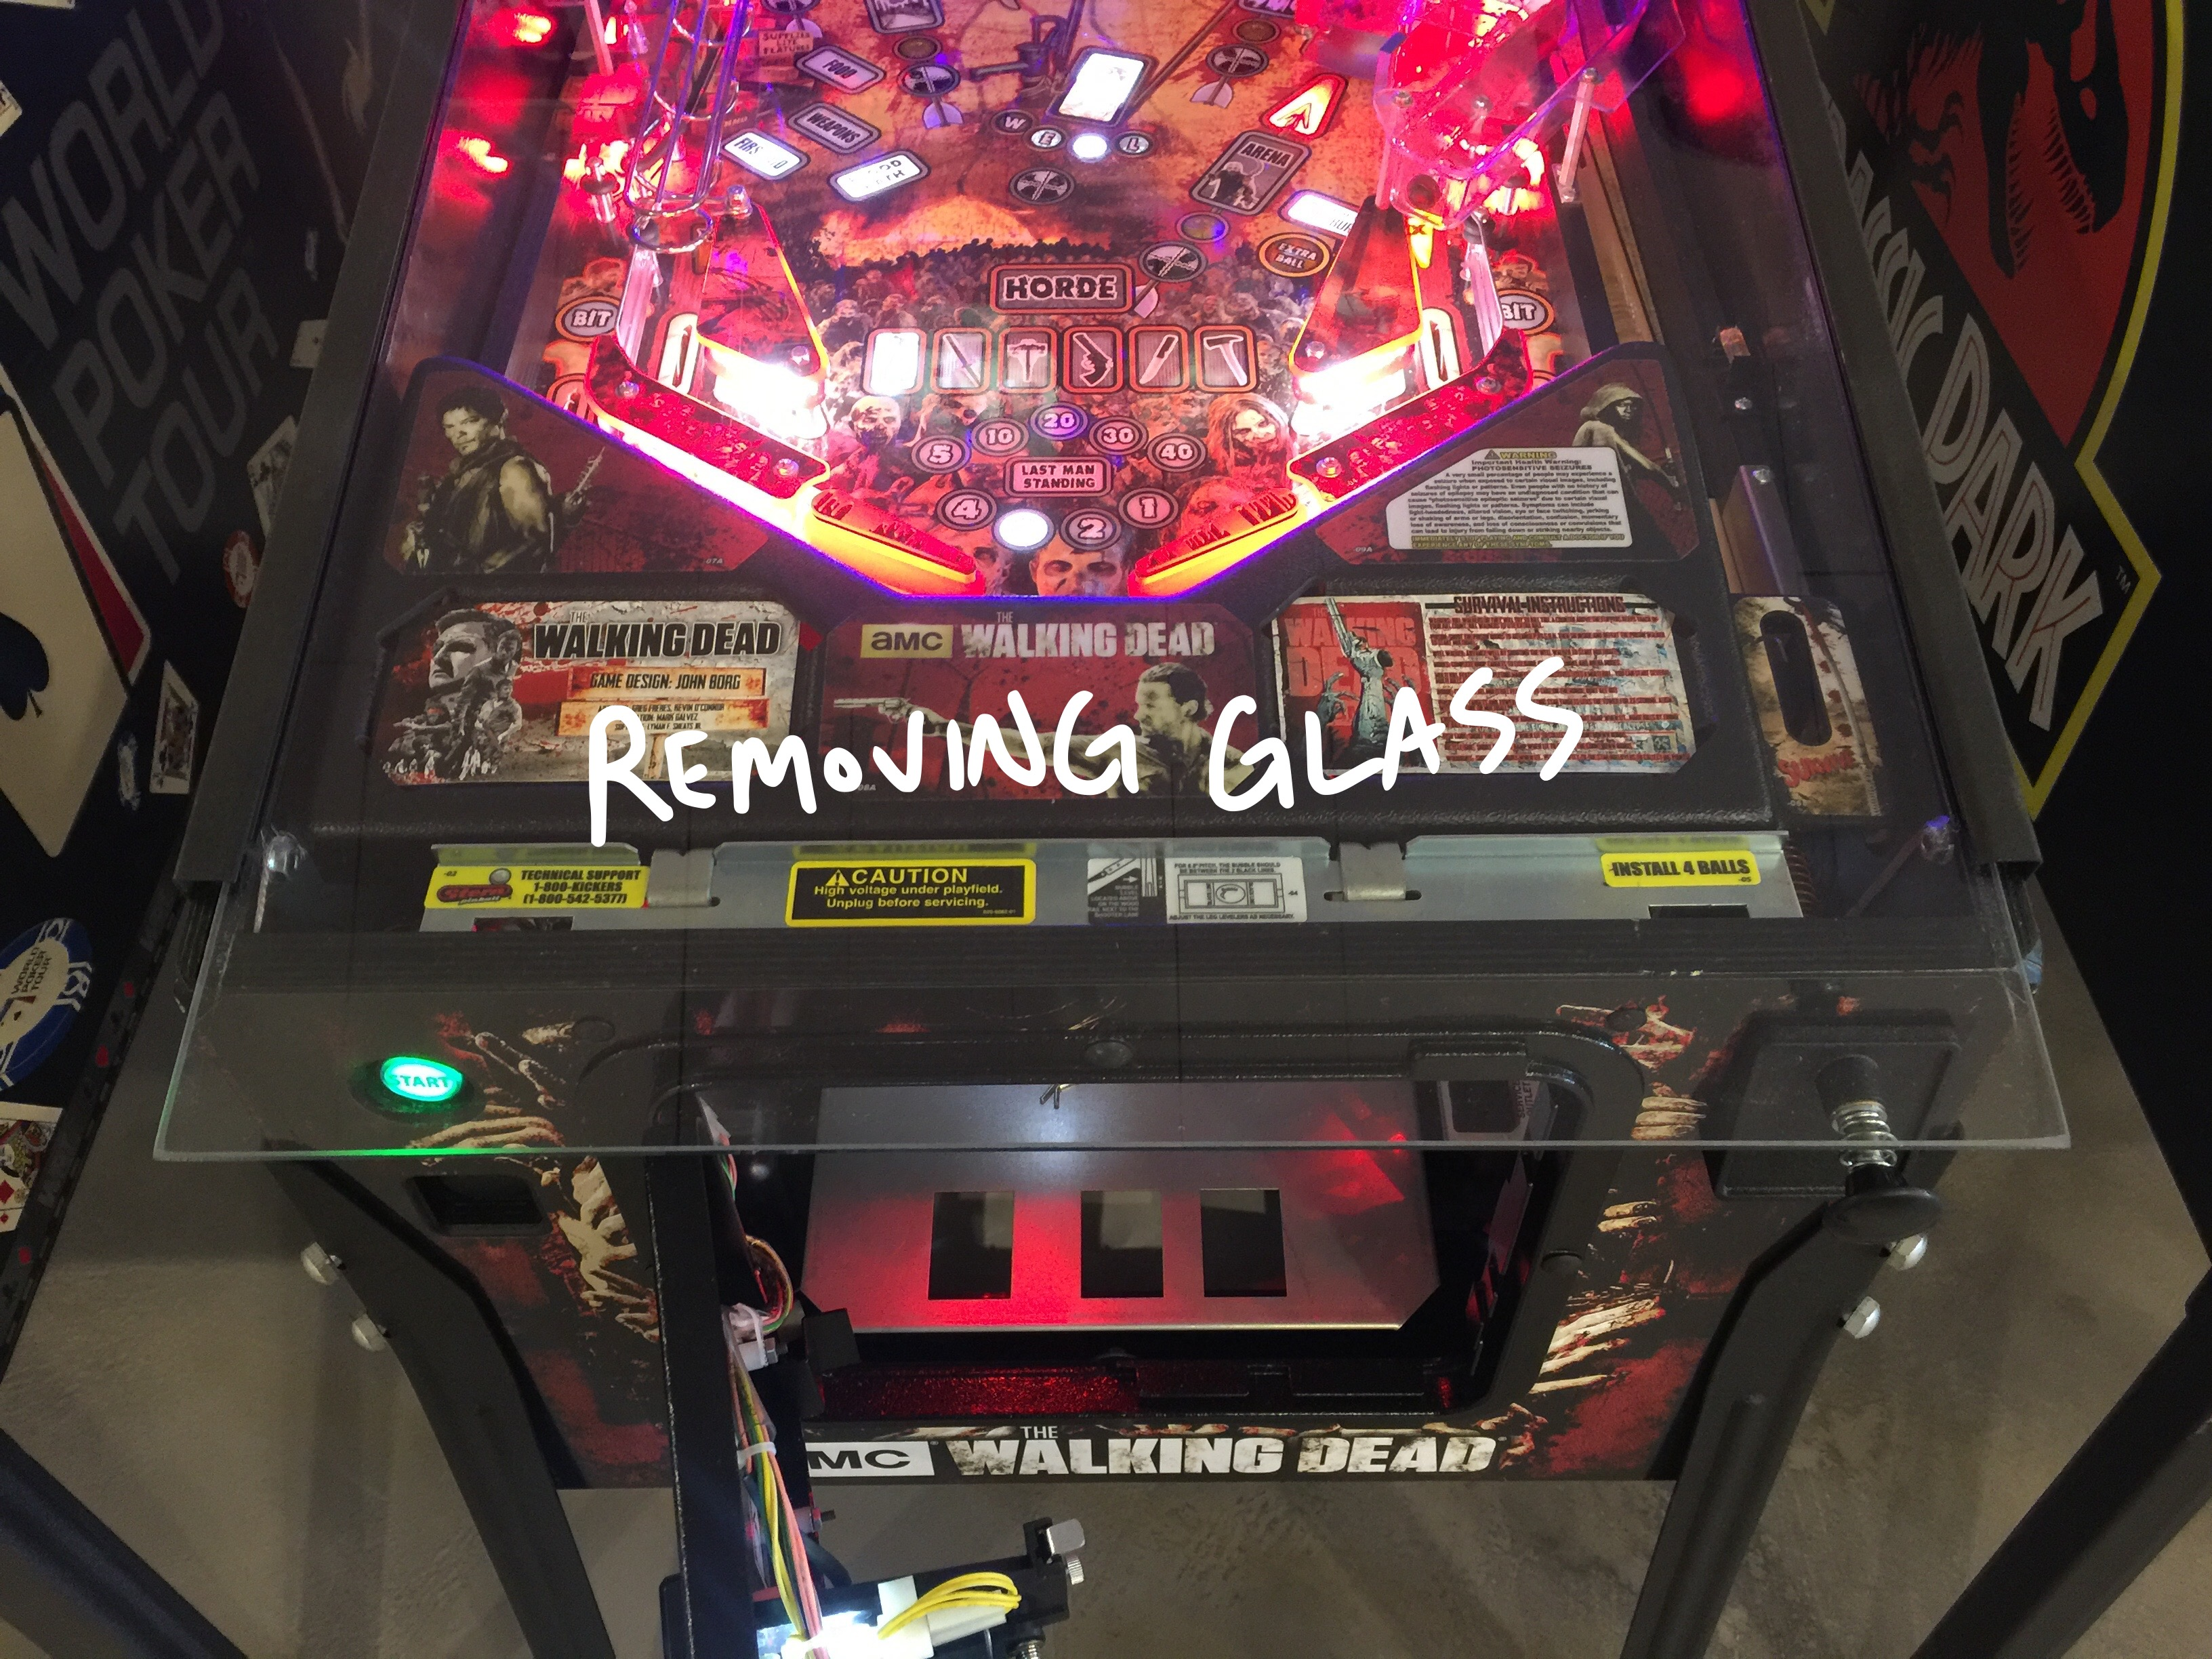 New to Pinball? - This Week in Pinball